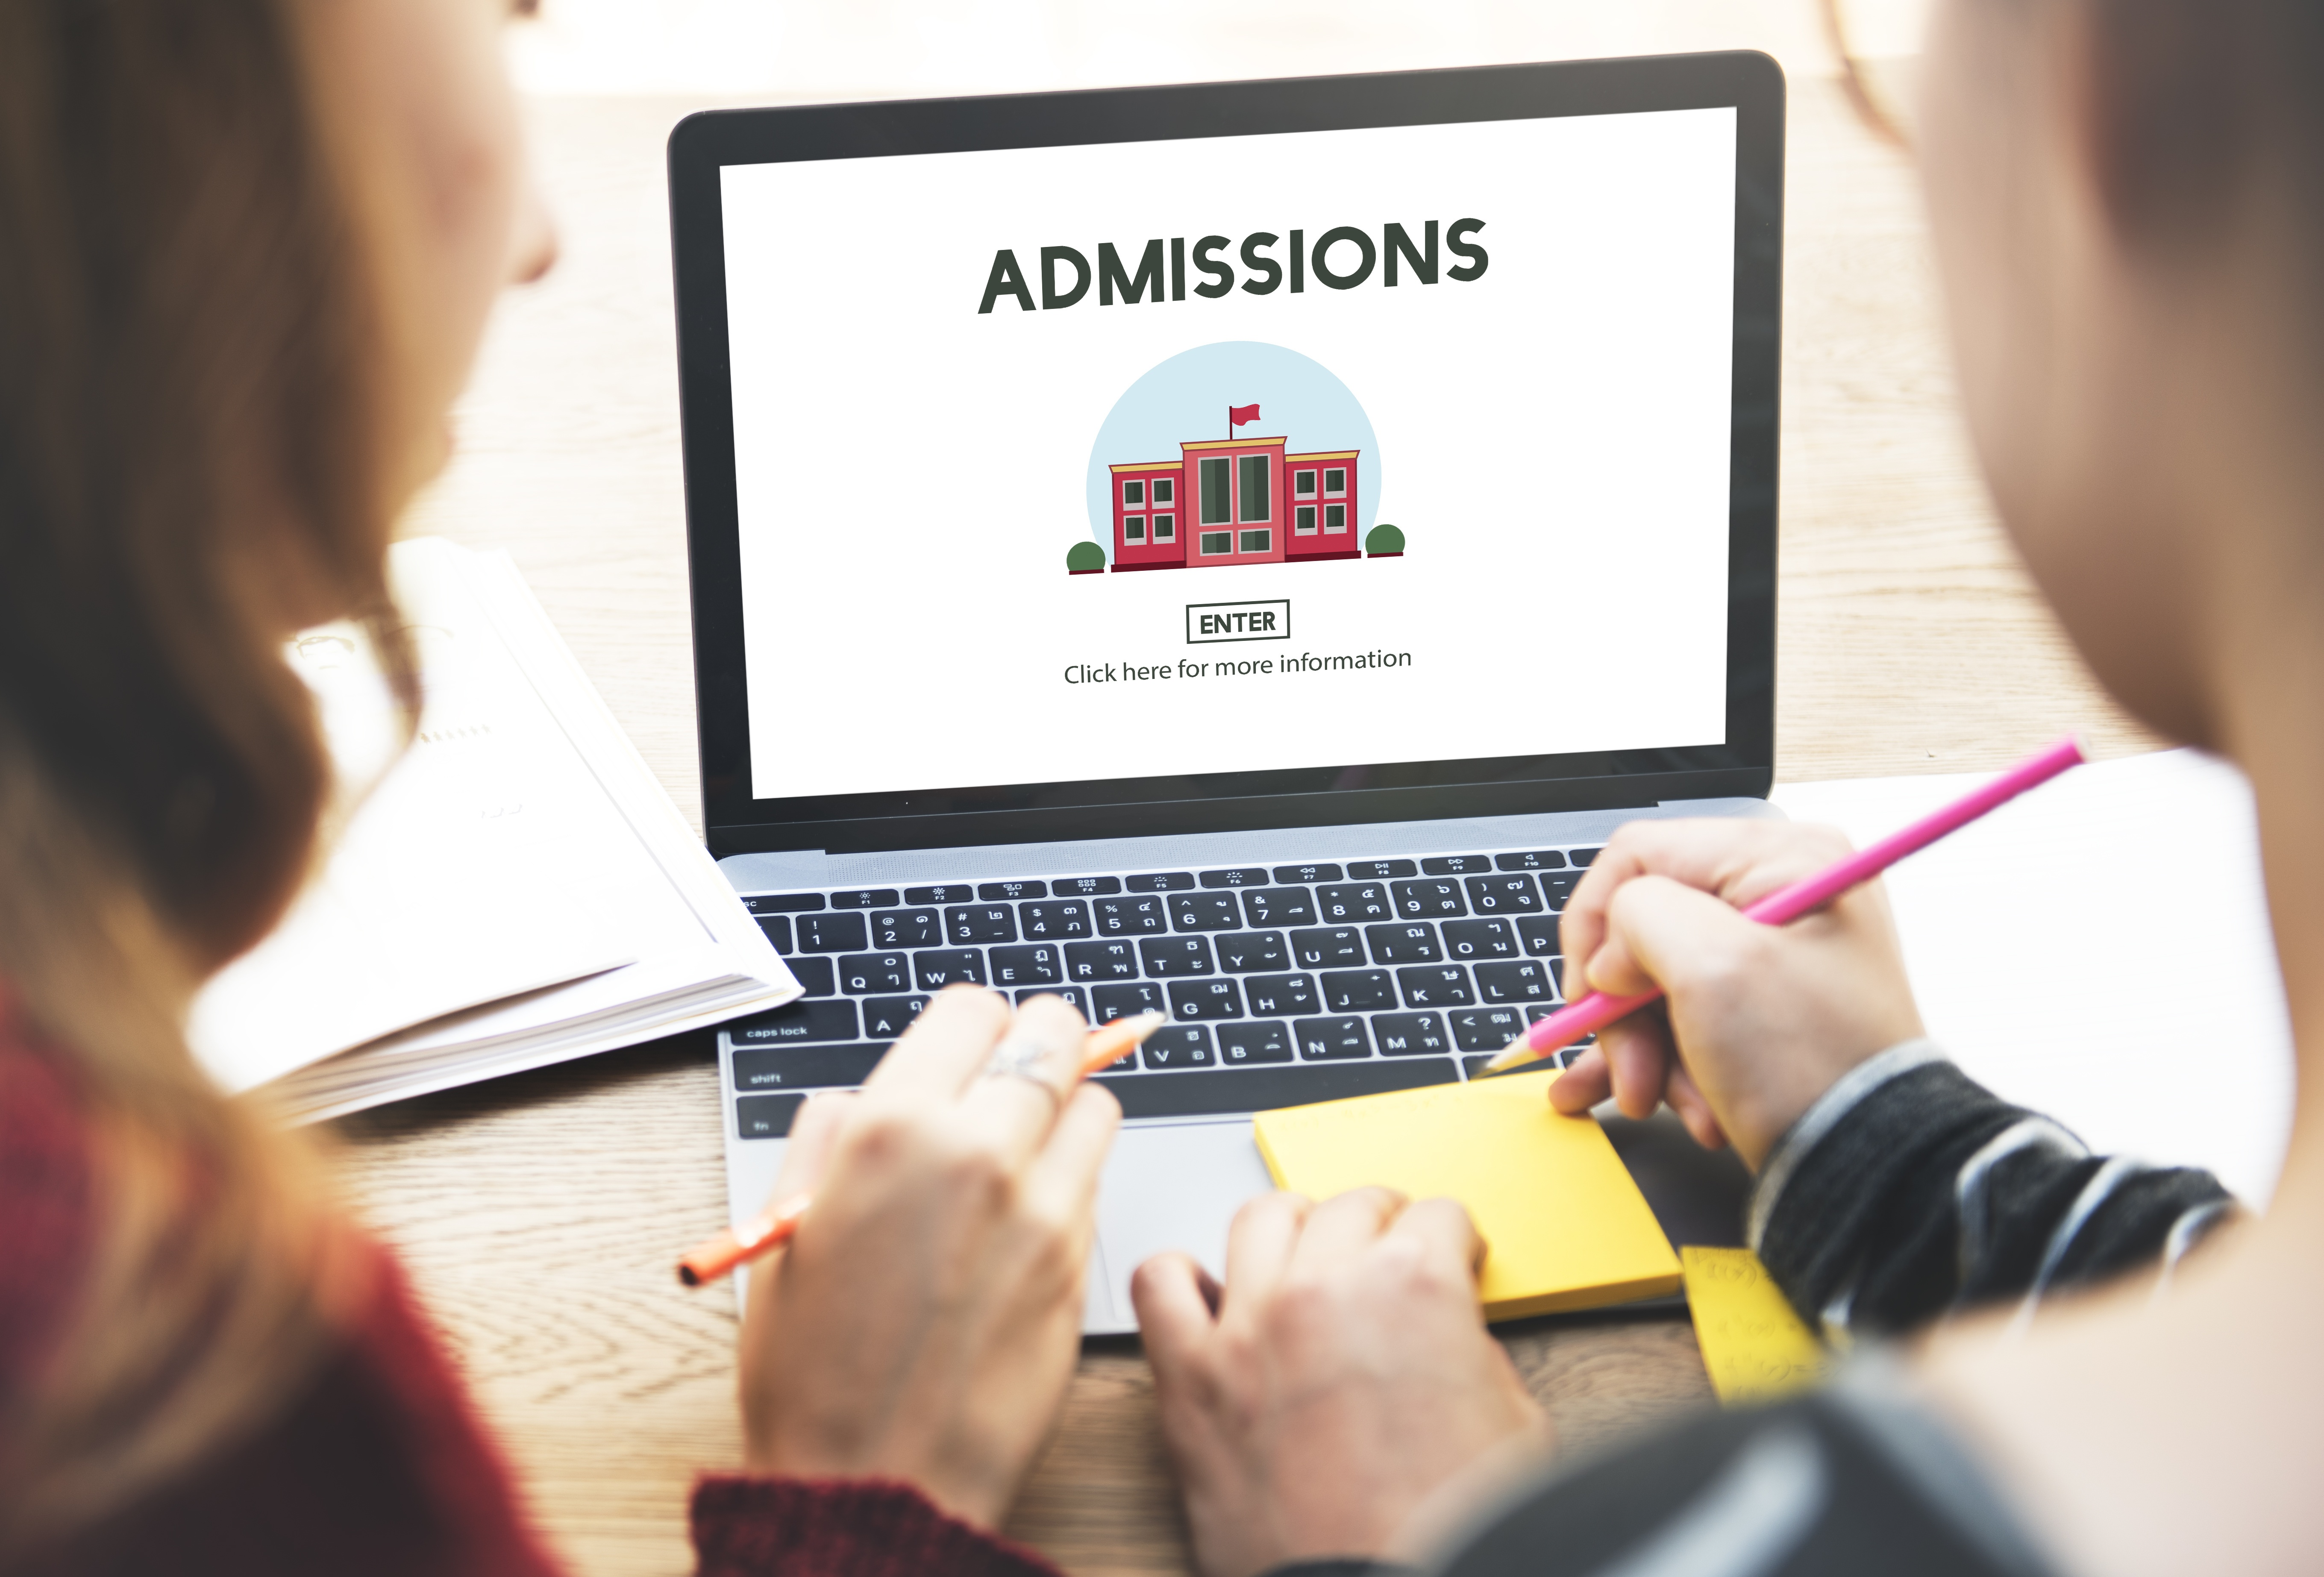 Two students visit a website for information on college admissions.